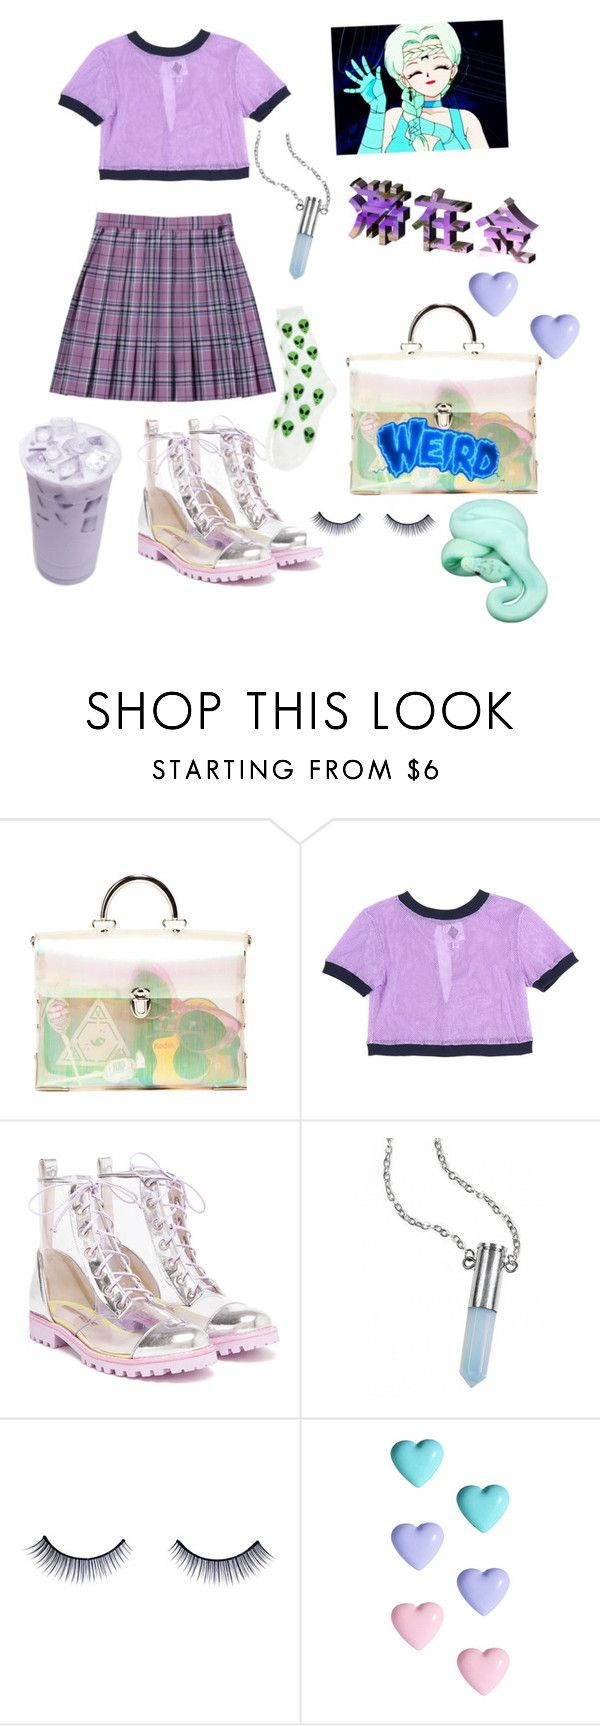 """""""Desires"""" by kawaii-senpai ❤ liked on Polyvore featuring House of Cards, Sophia Webster, Bullet, Napoleon Perdis and River Island"""